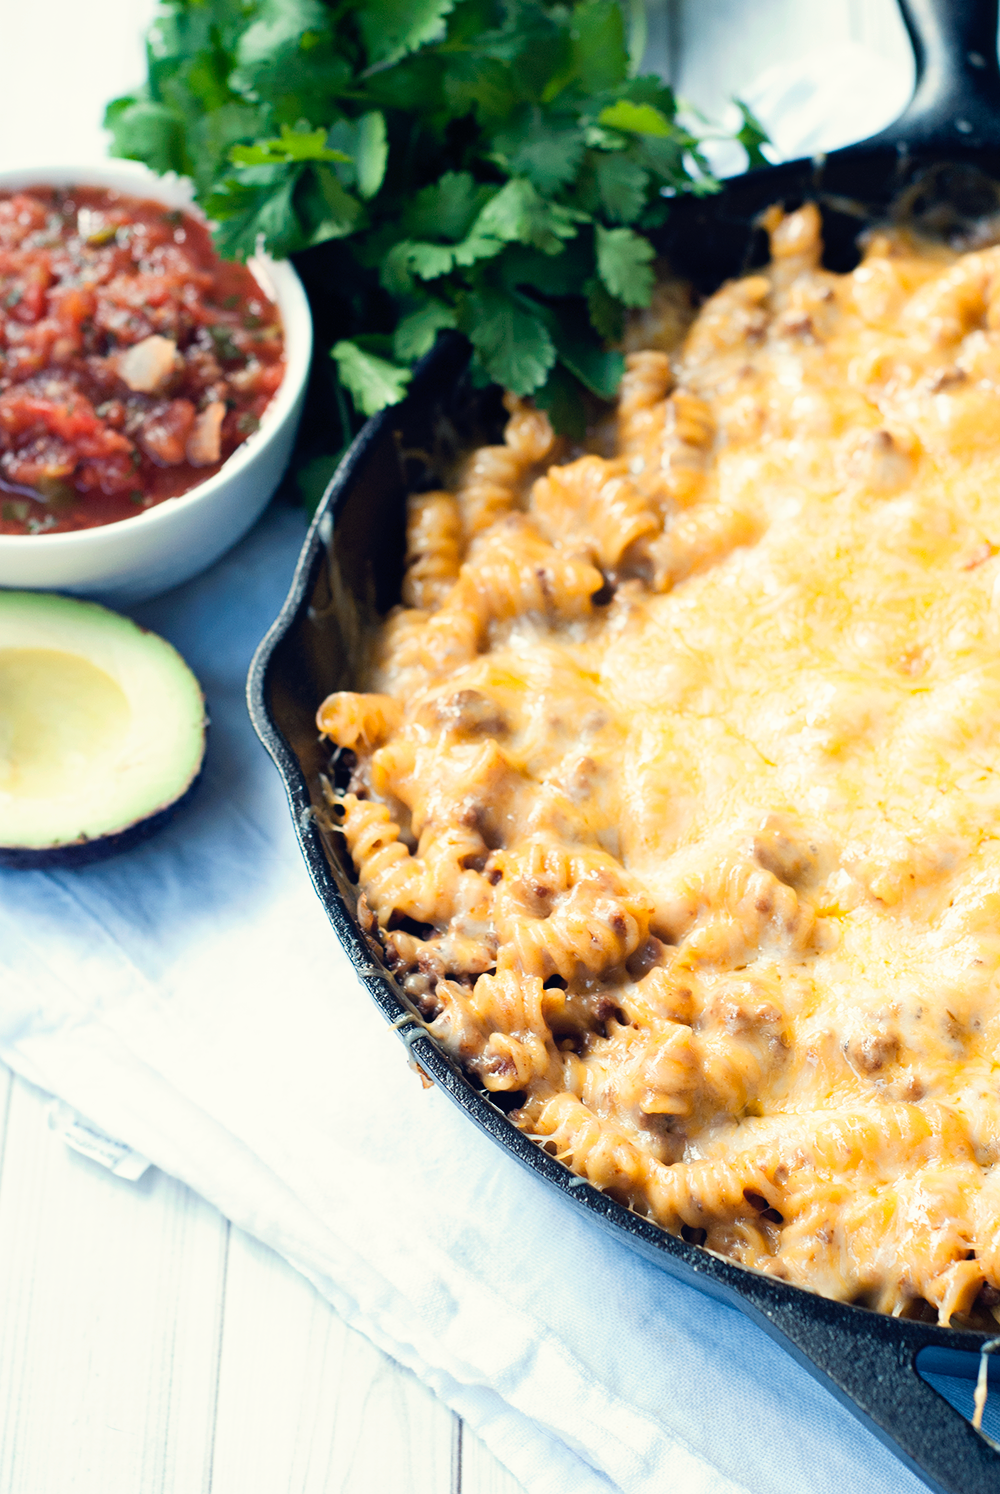 This one pot enchilada pasta proves that Mexican food means more than just tortillas! I could make this everyday, it's so delicious!